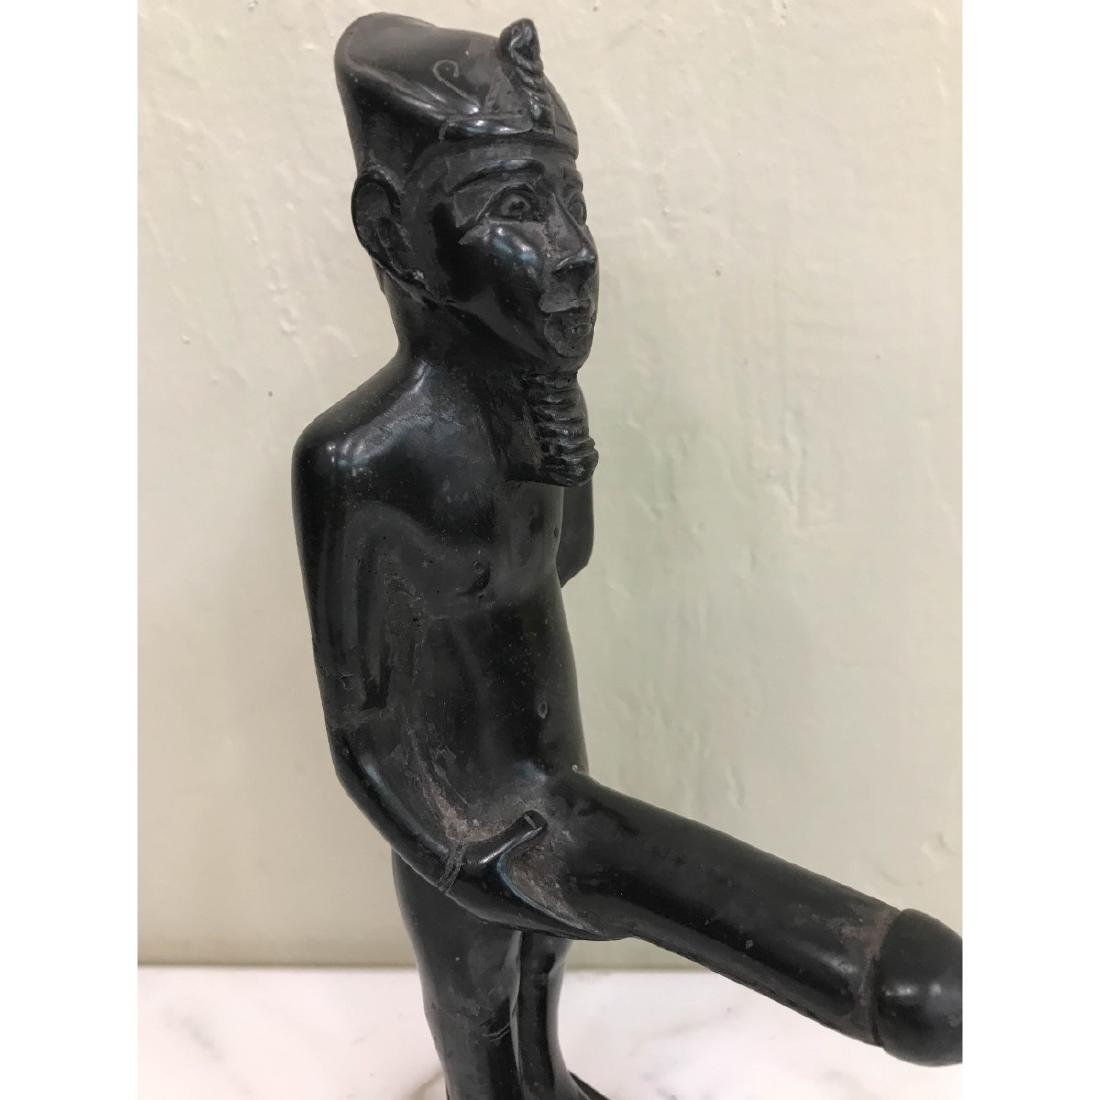 Erotic Carved Wood Statue of Egyptian Man - 4